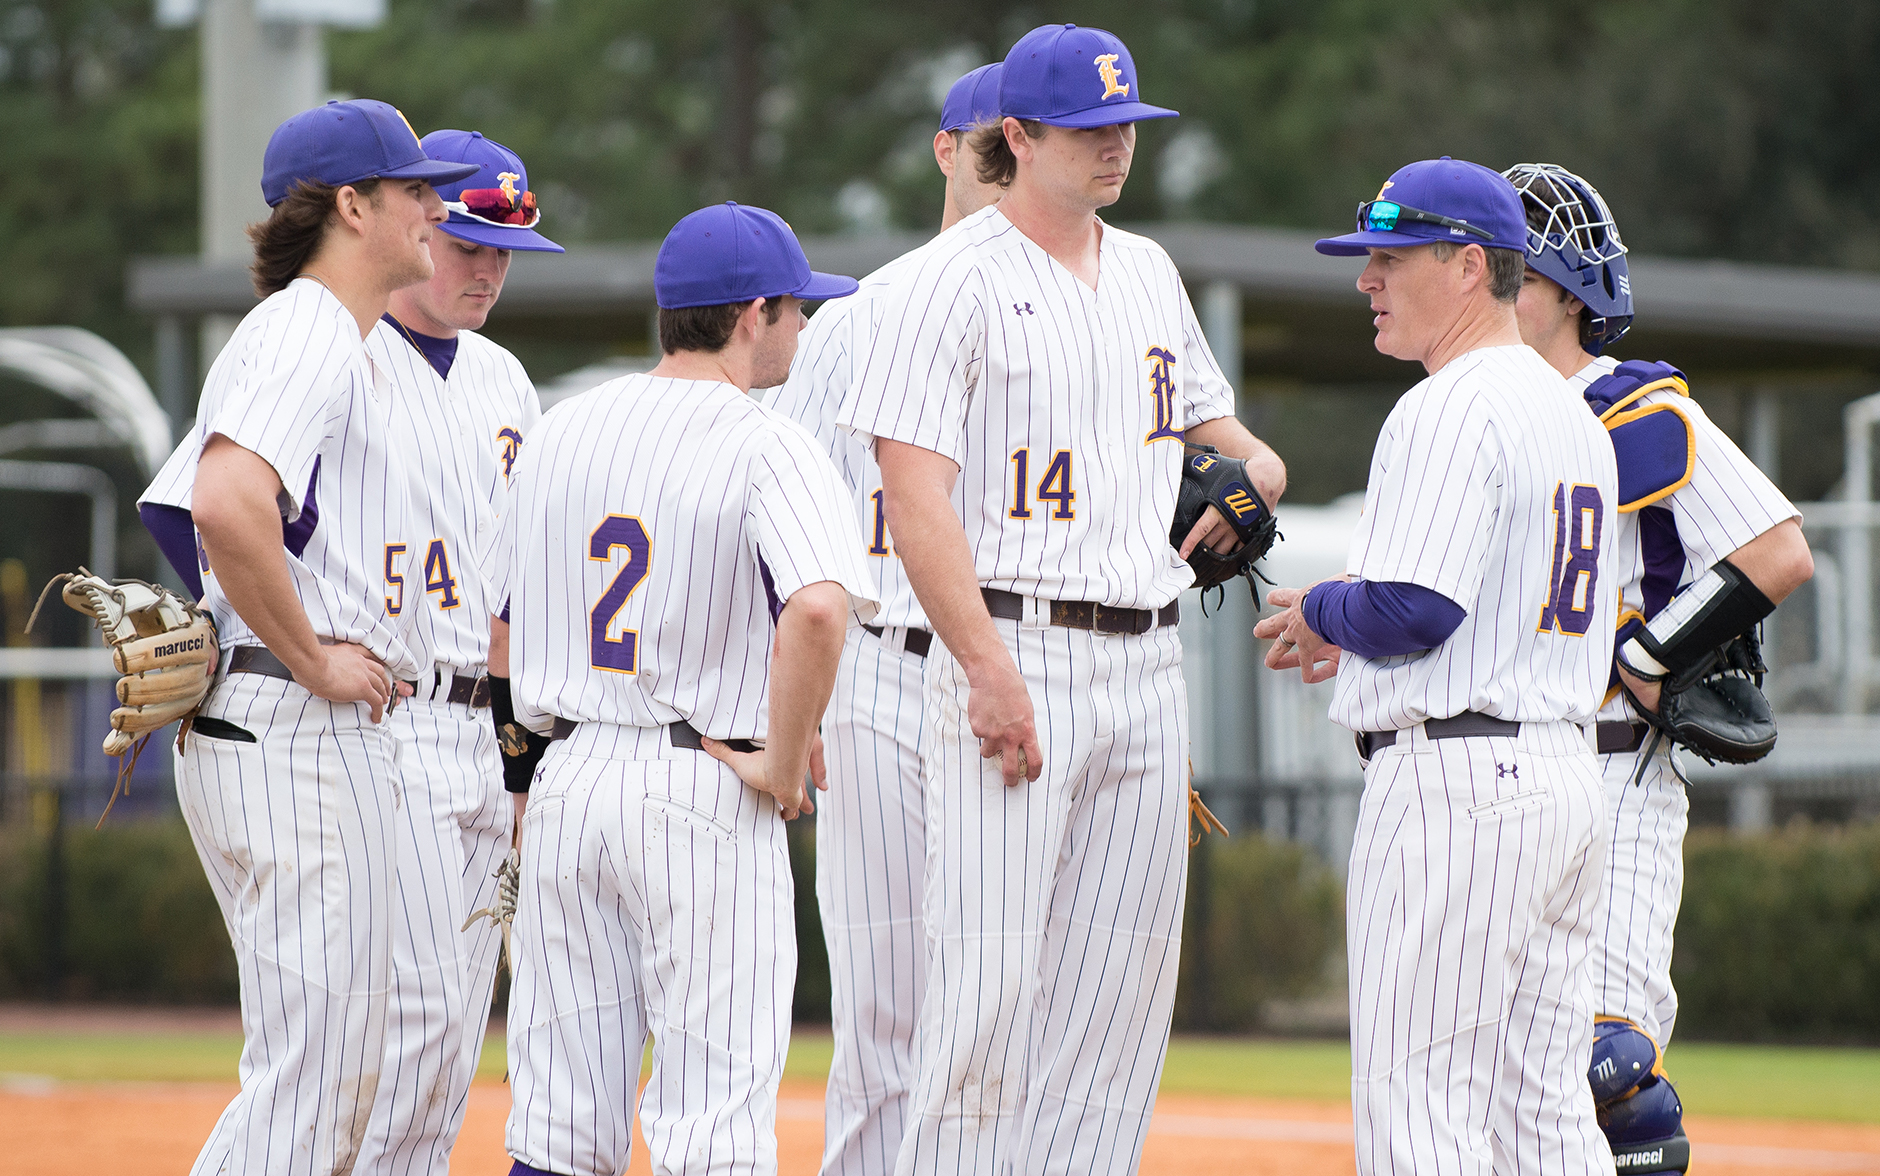 LSU Eunice assistant coach Alan Orgain talking to team. (Photo: LSUE)